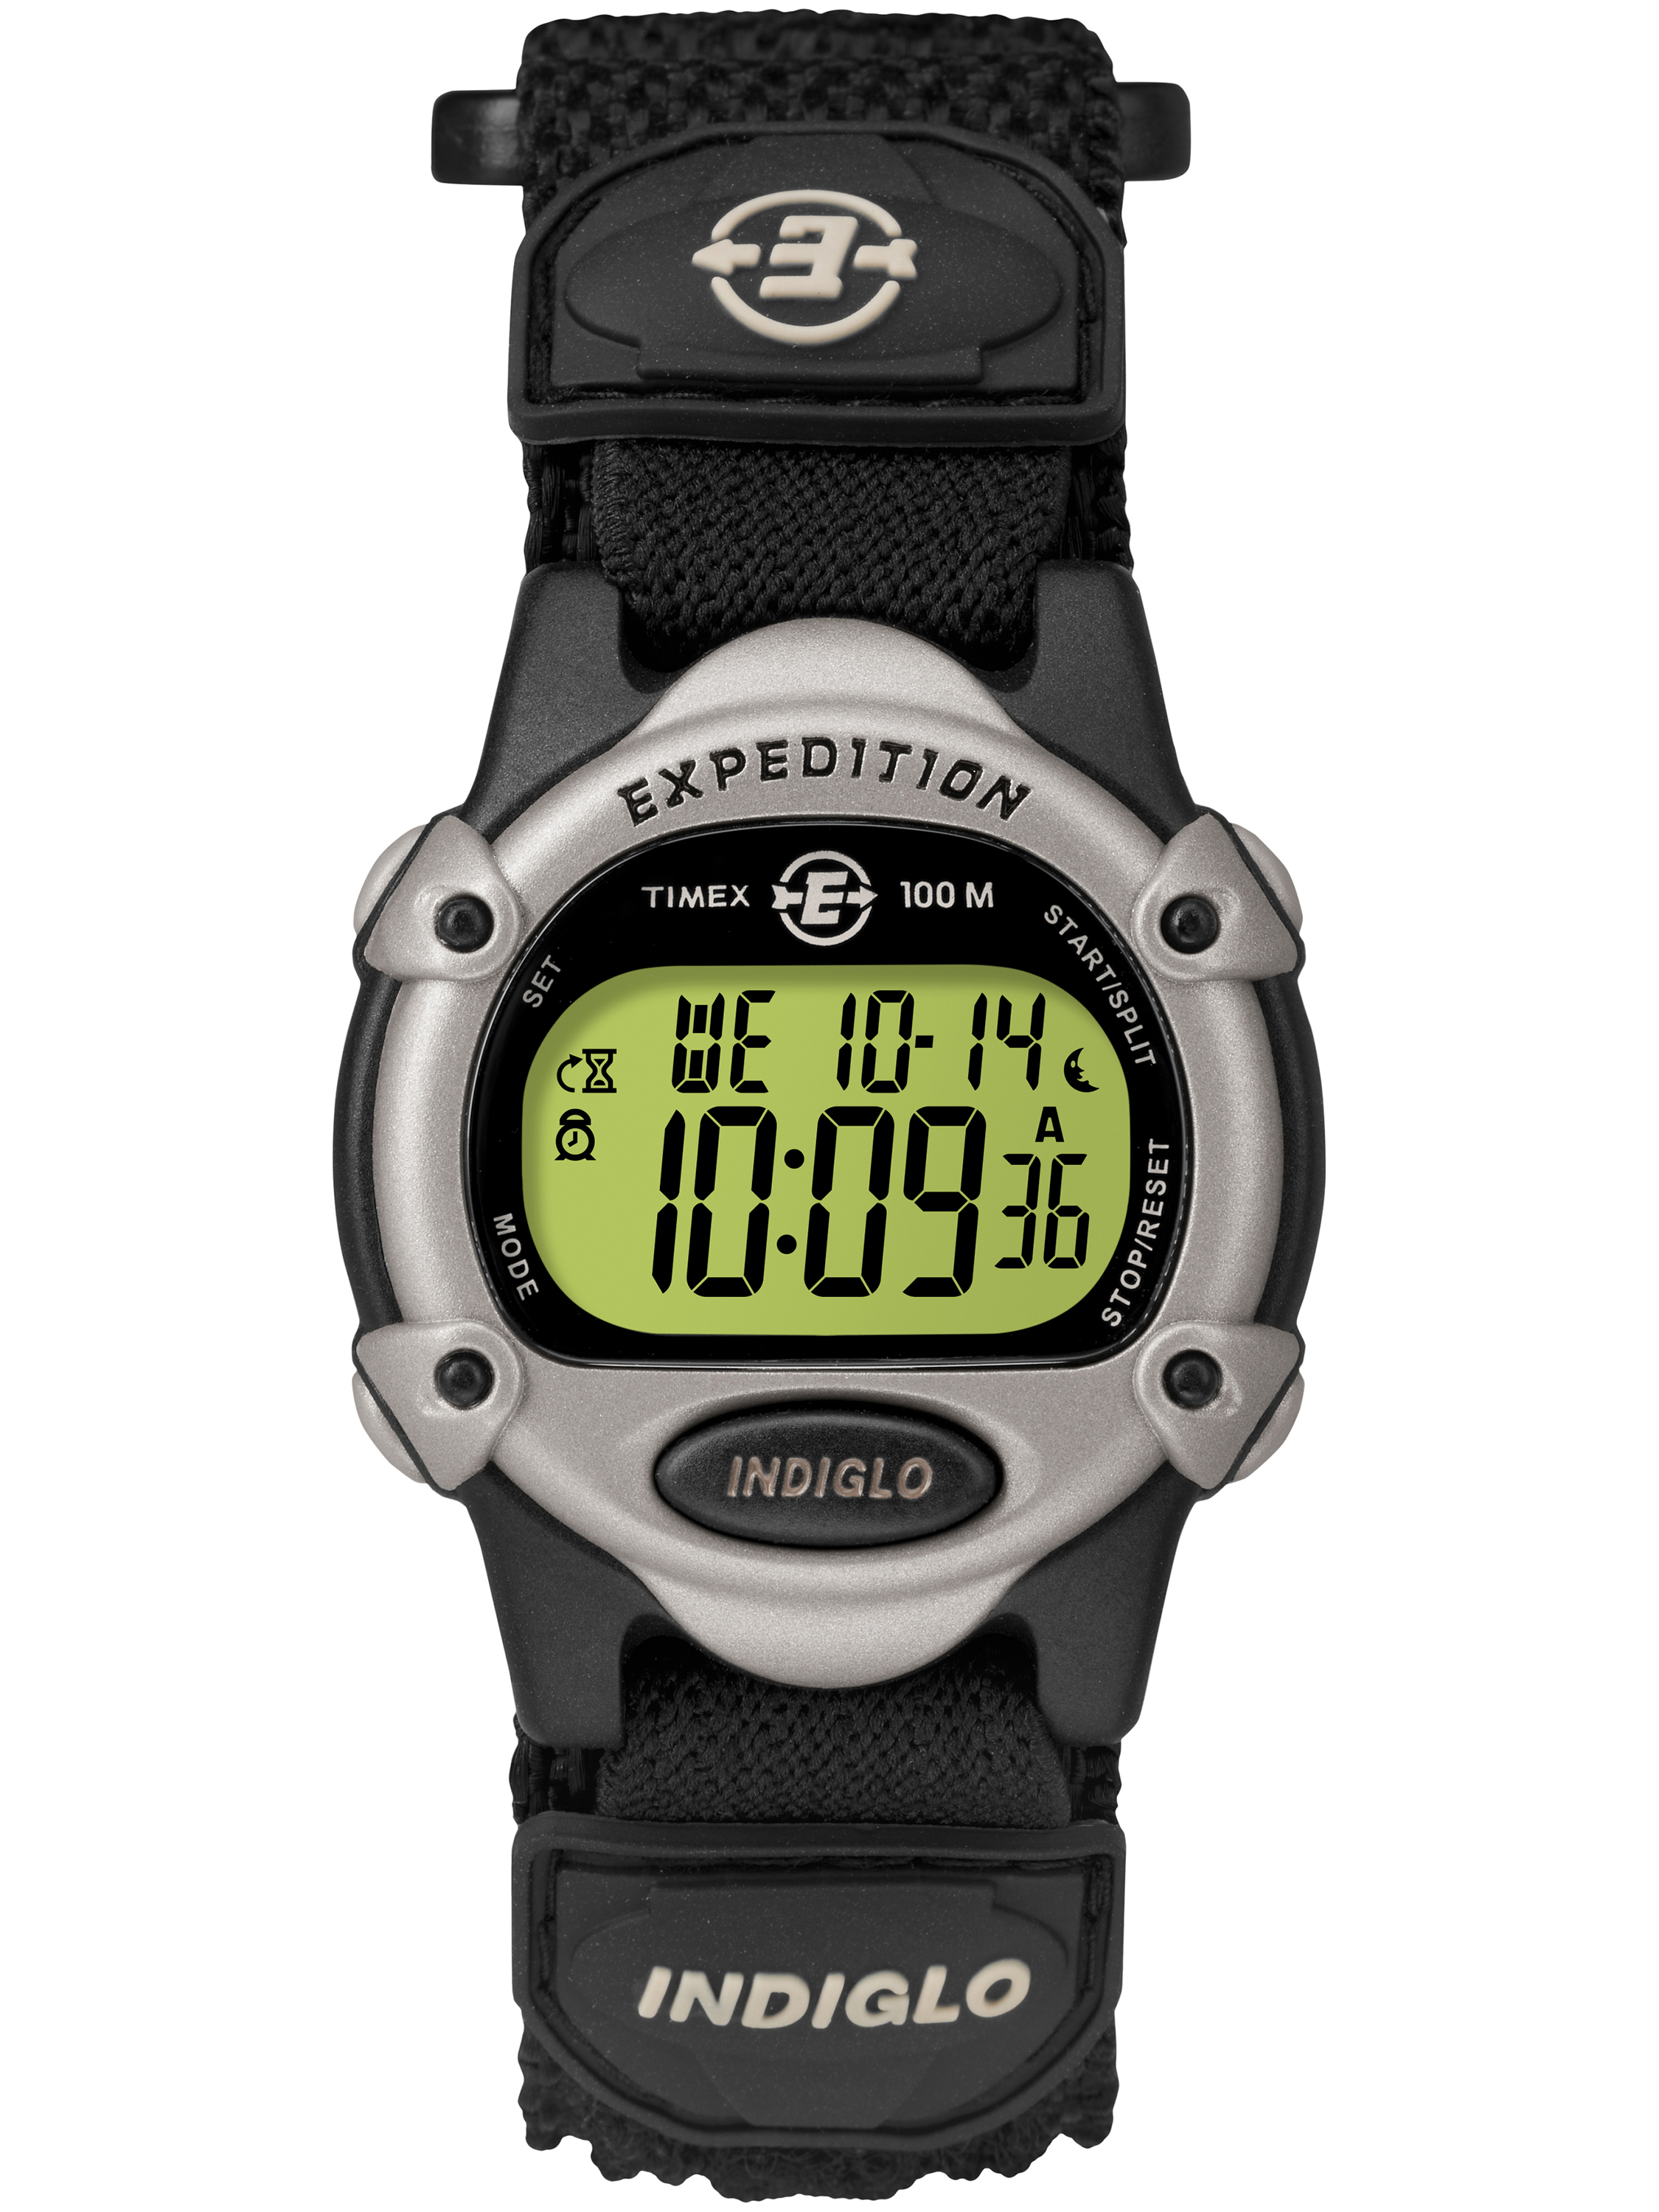 Unisex Expedition Digital CAT Watch, Black Fast Wrap Strap